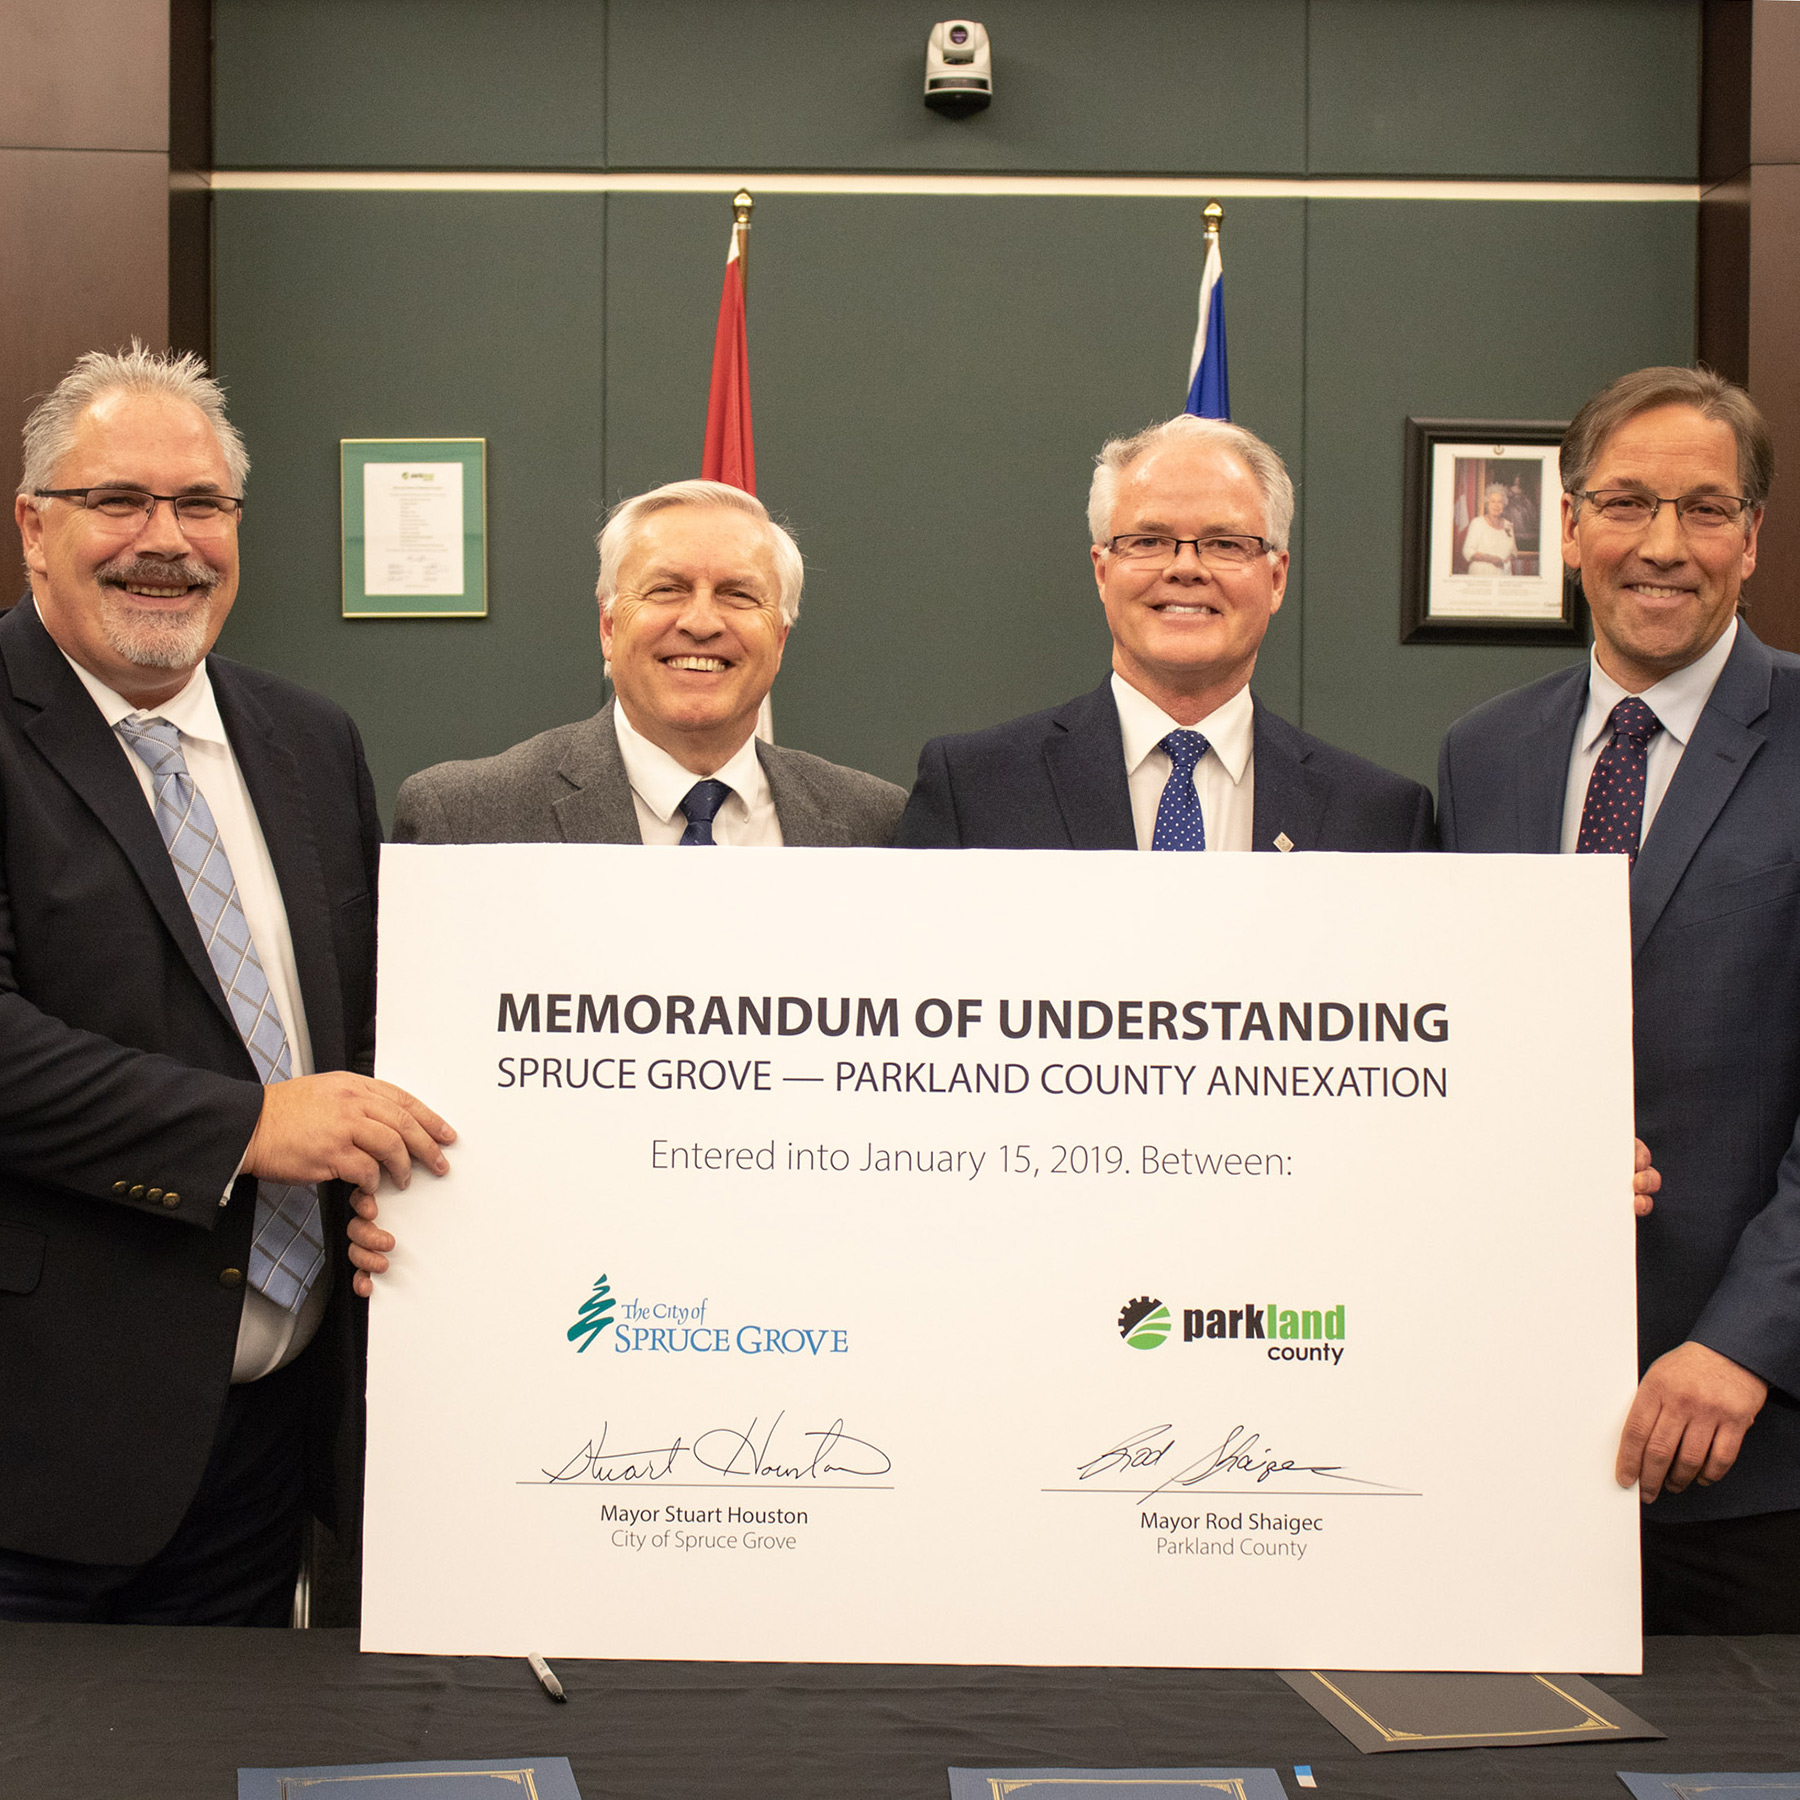 2019-01-15-ParklandCountySpruceGrove_AnnexationMOUSigning Square